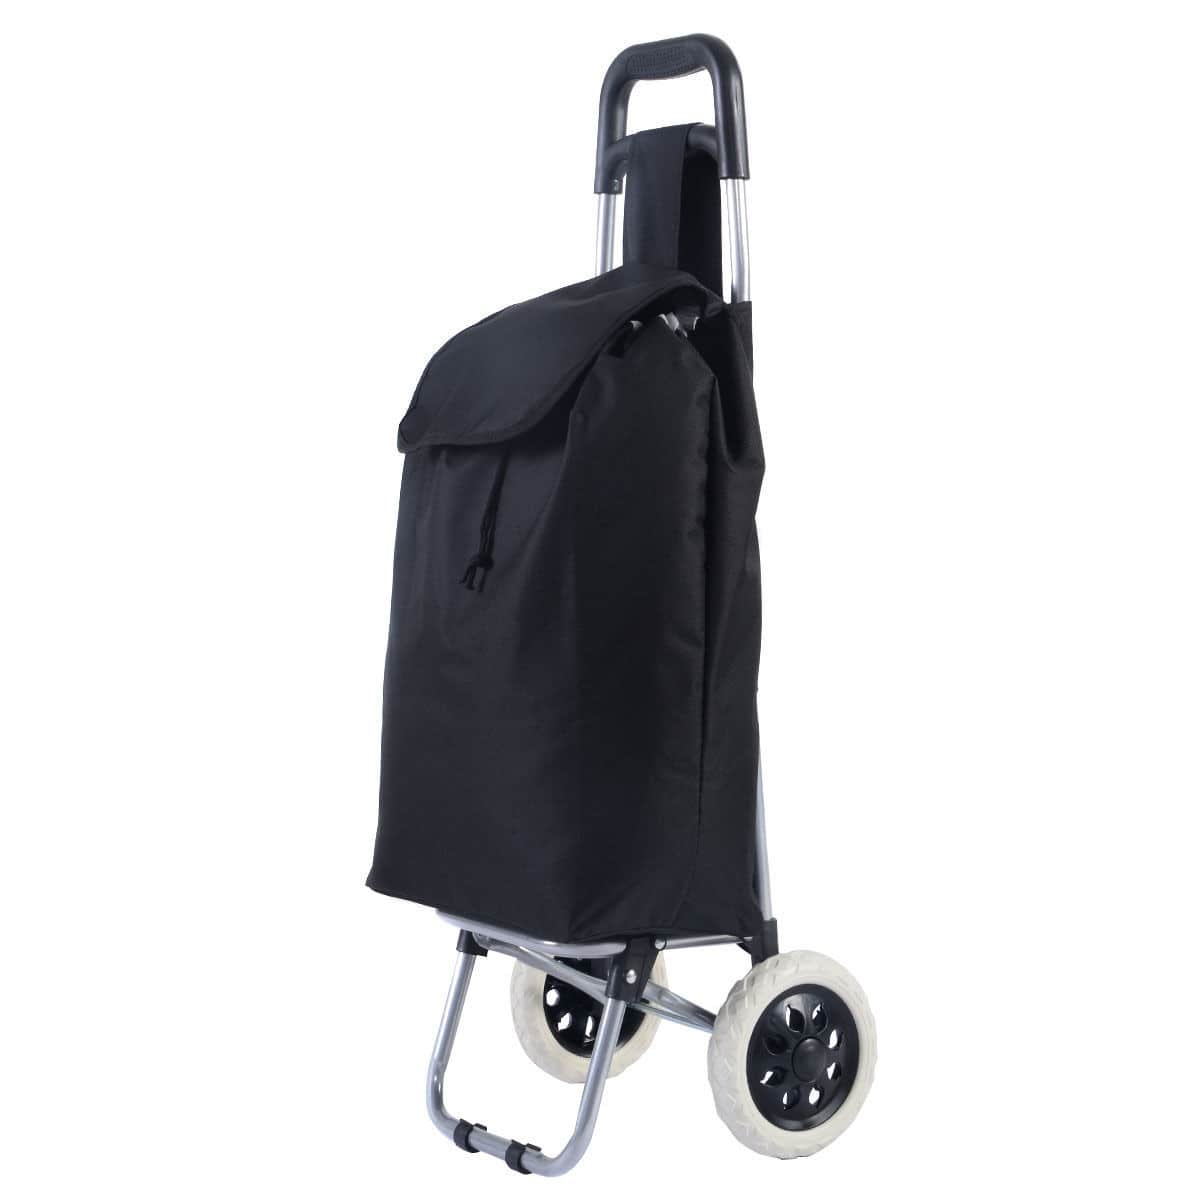 Cosway Large Capacity Light Weight Wheeled Shopping Trolley Cart - $20.95 + Free Shipping